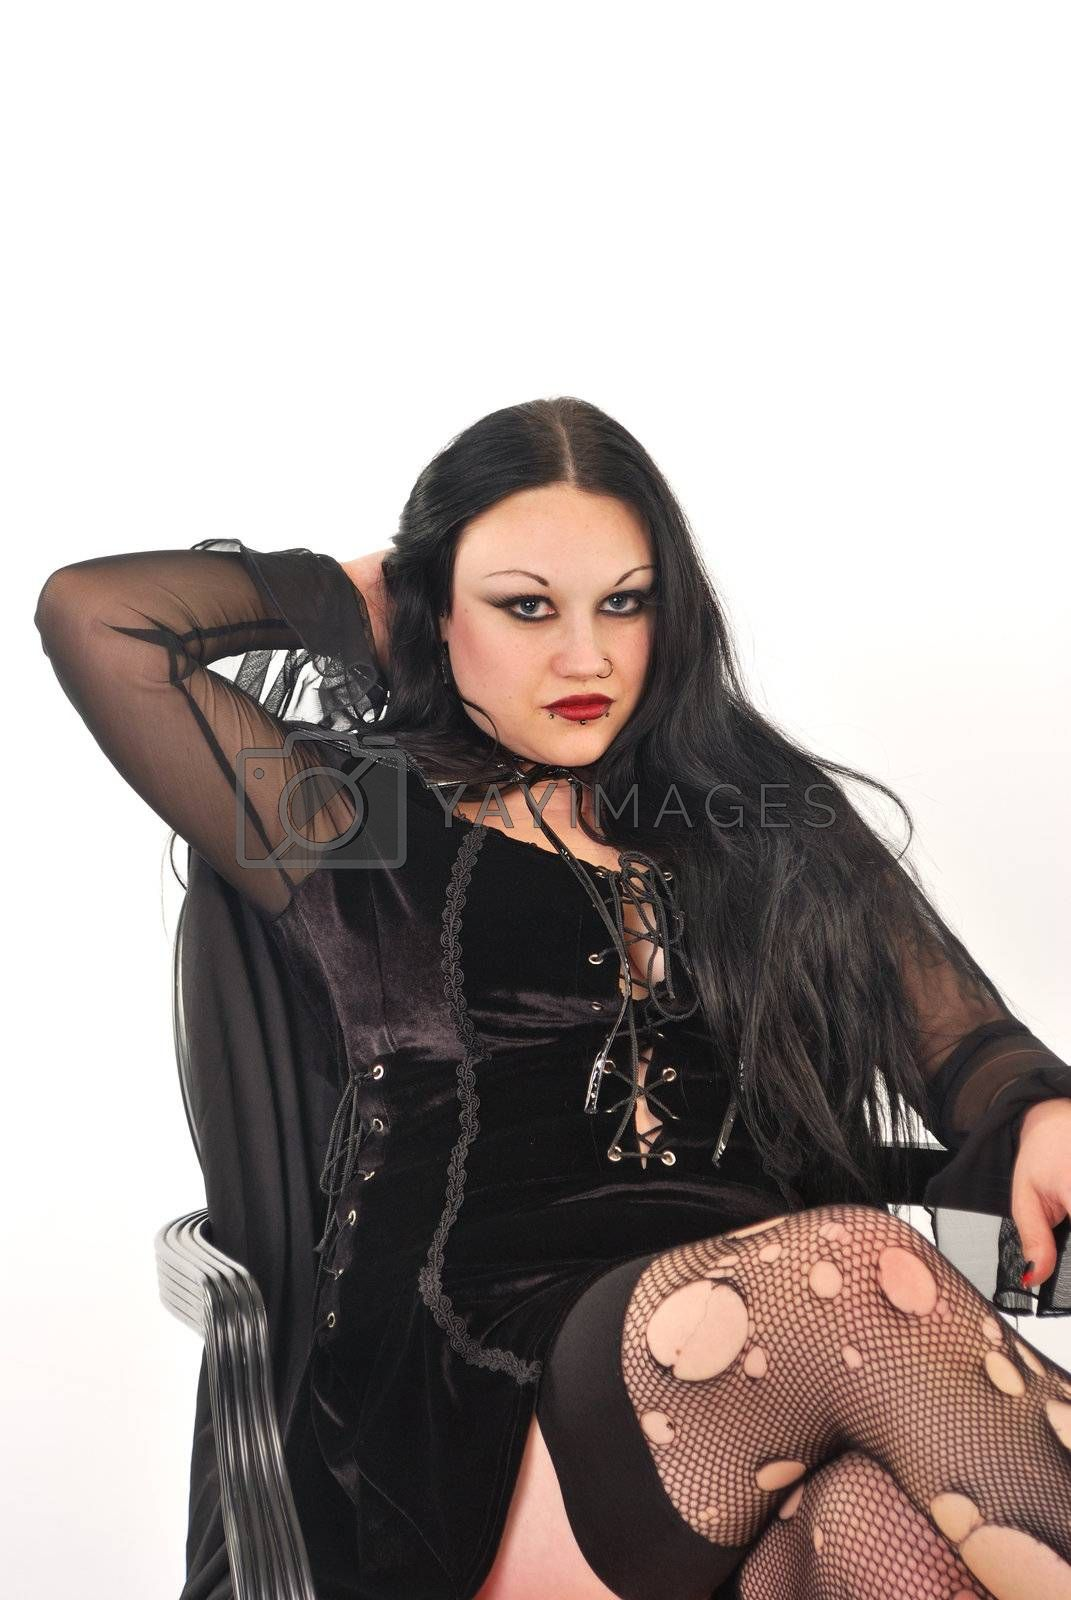 Gothic girl sitting in stockings